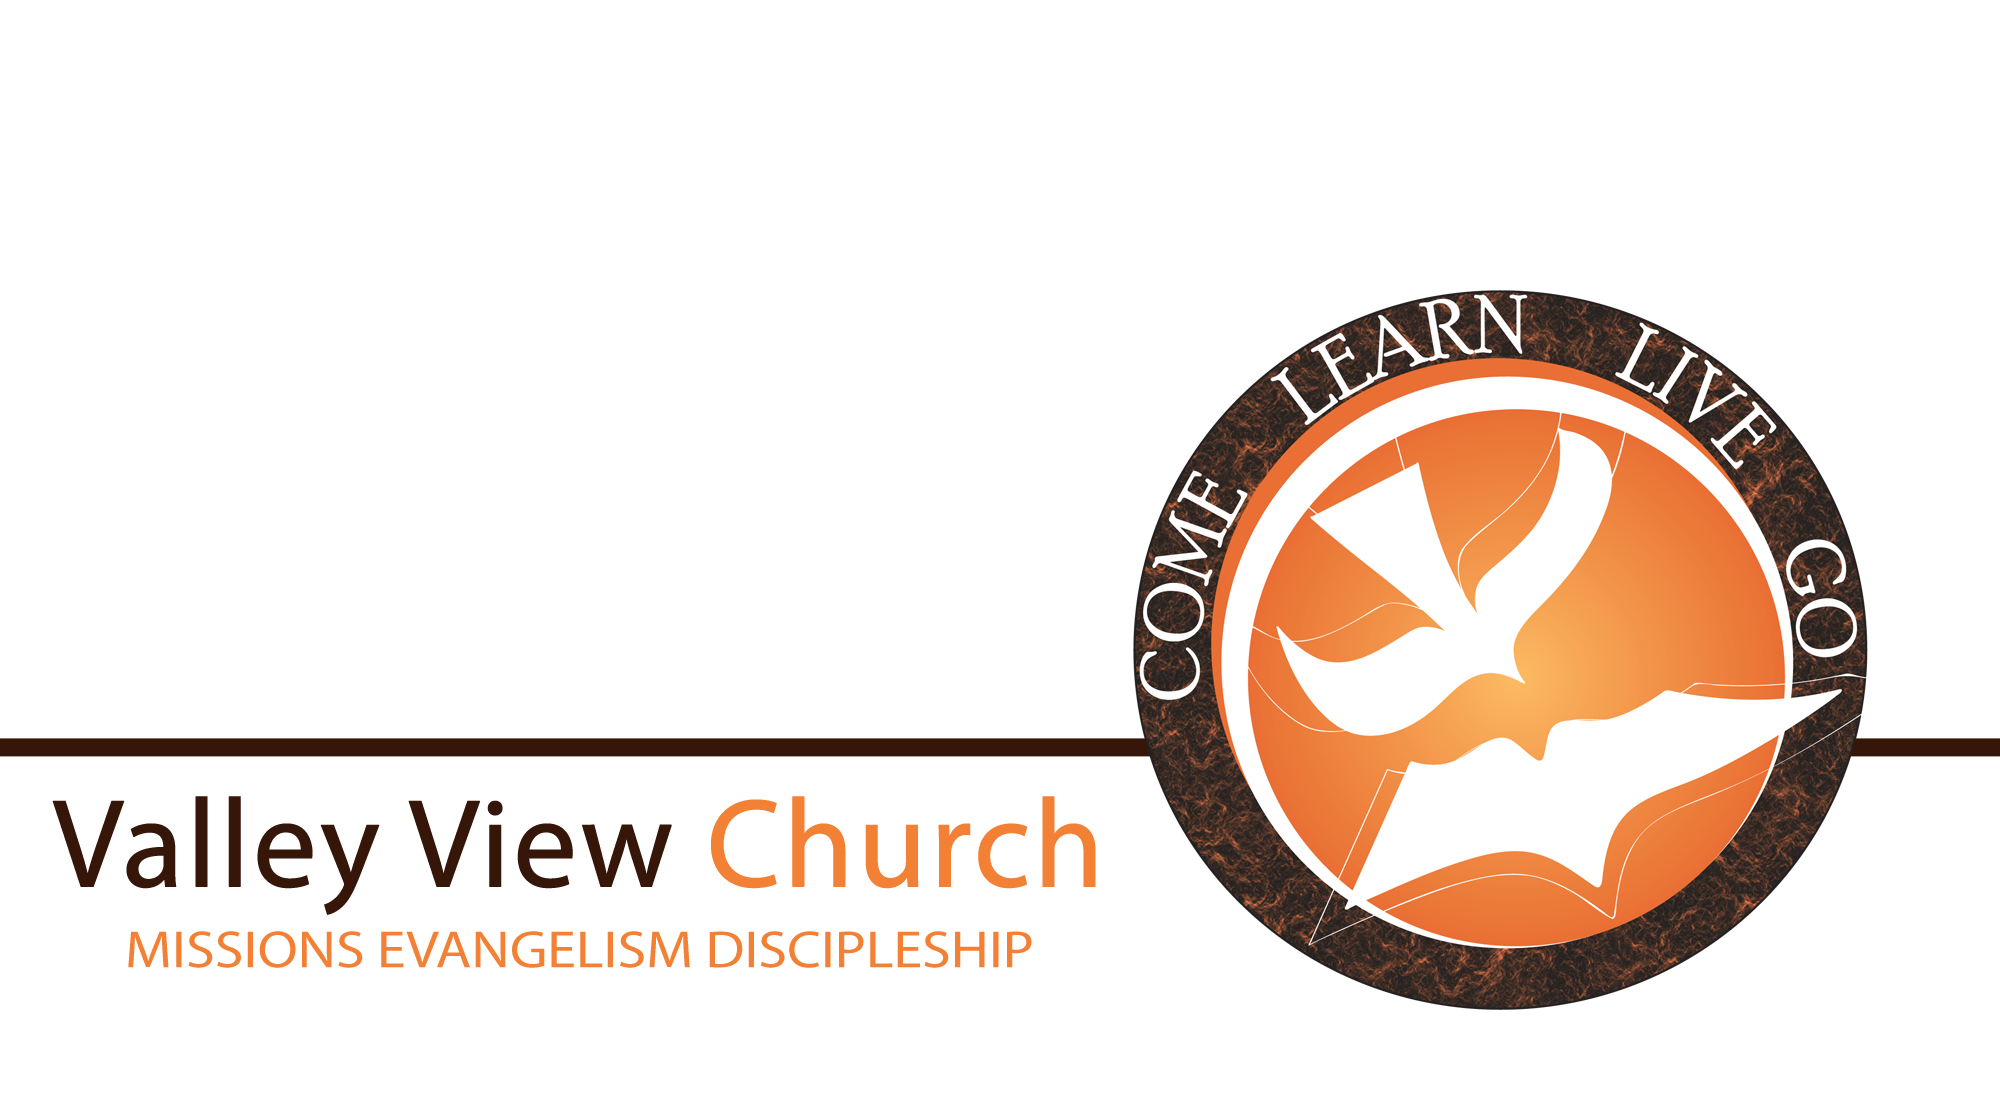 Valley View Church - image 1 - student project